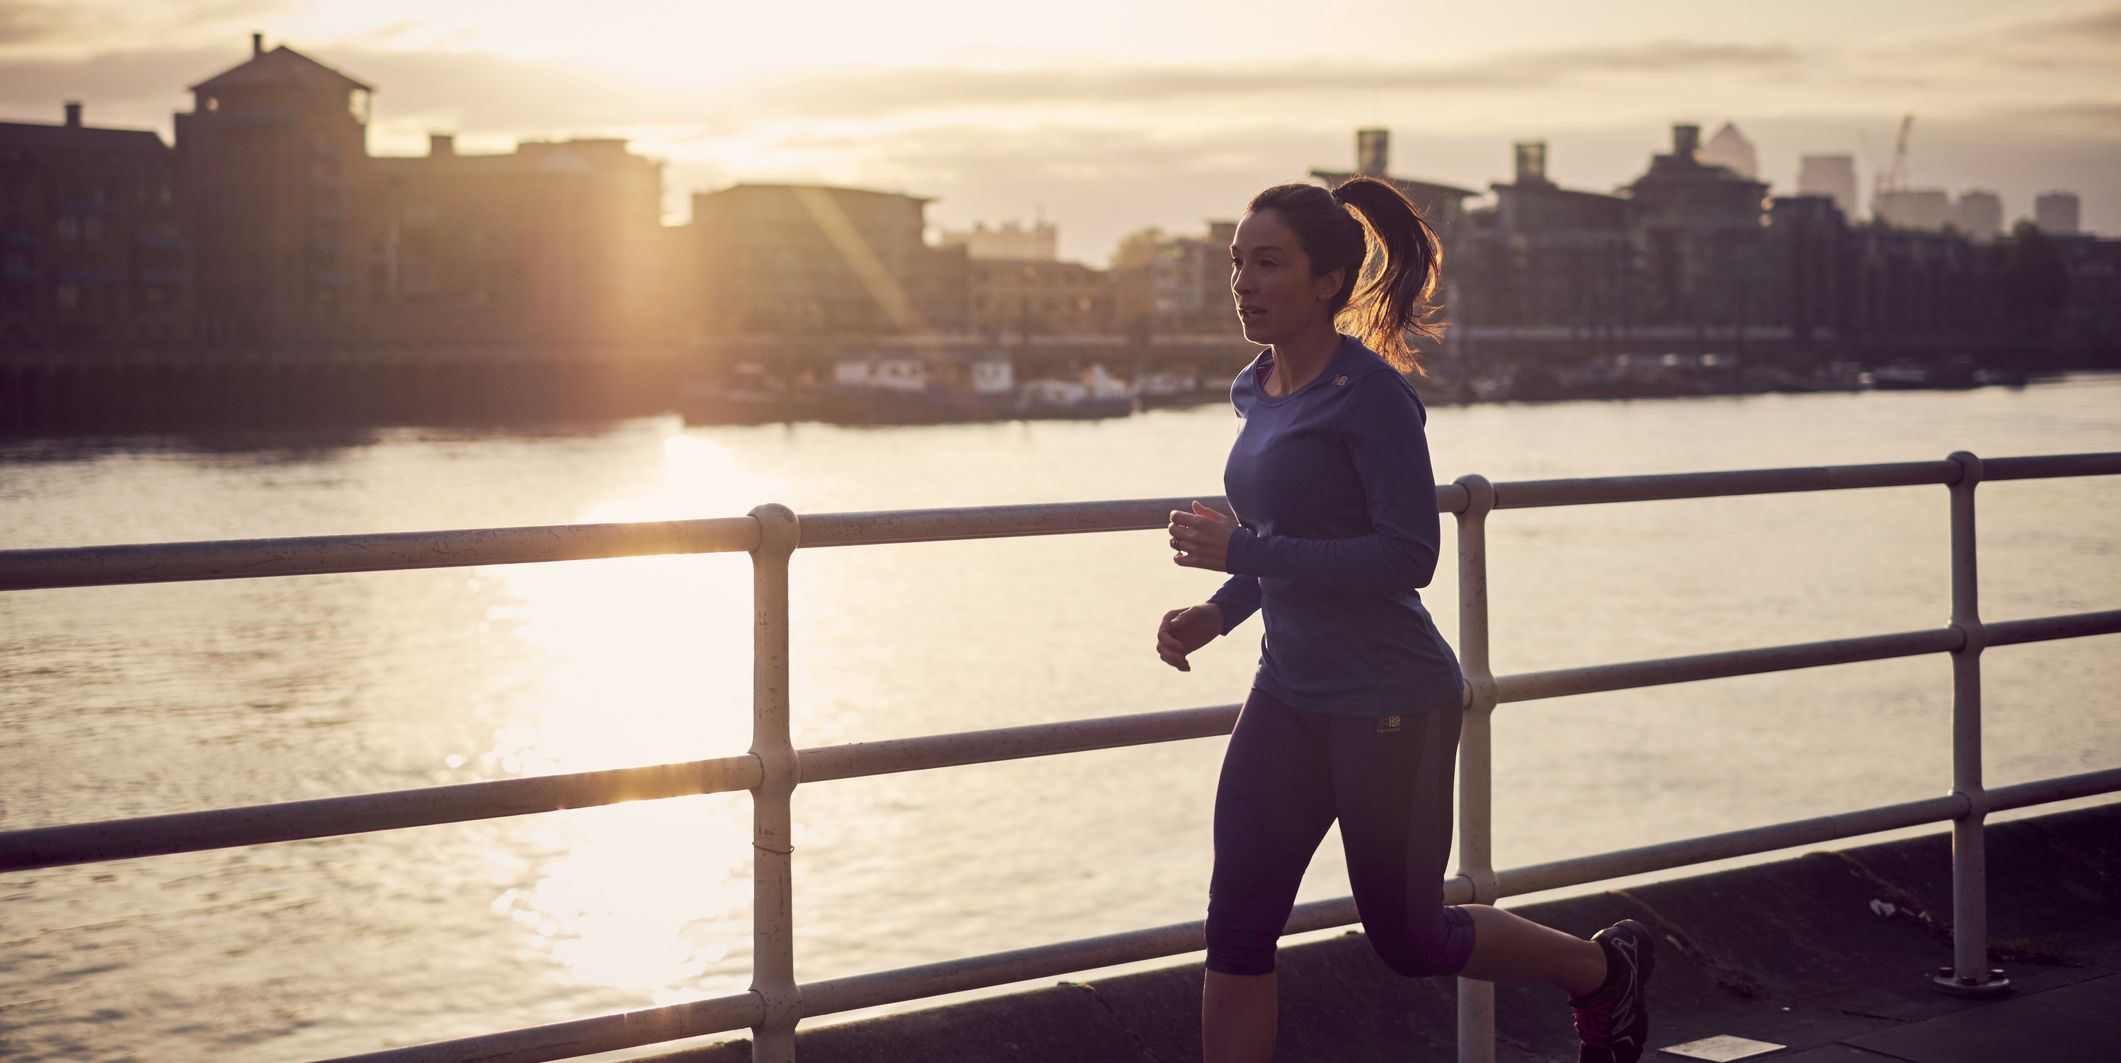 A woman running alongside the River Thames in London